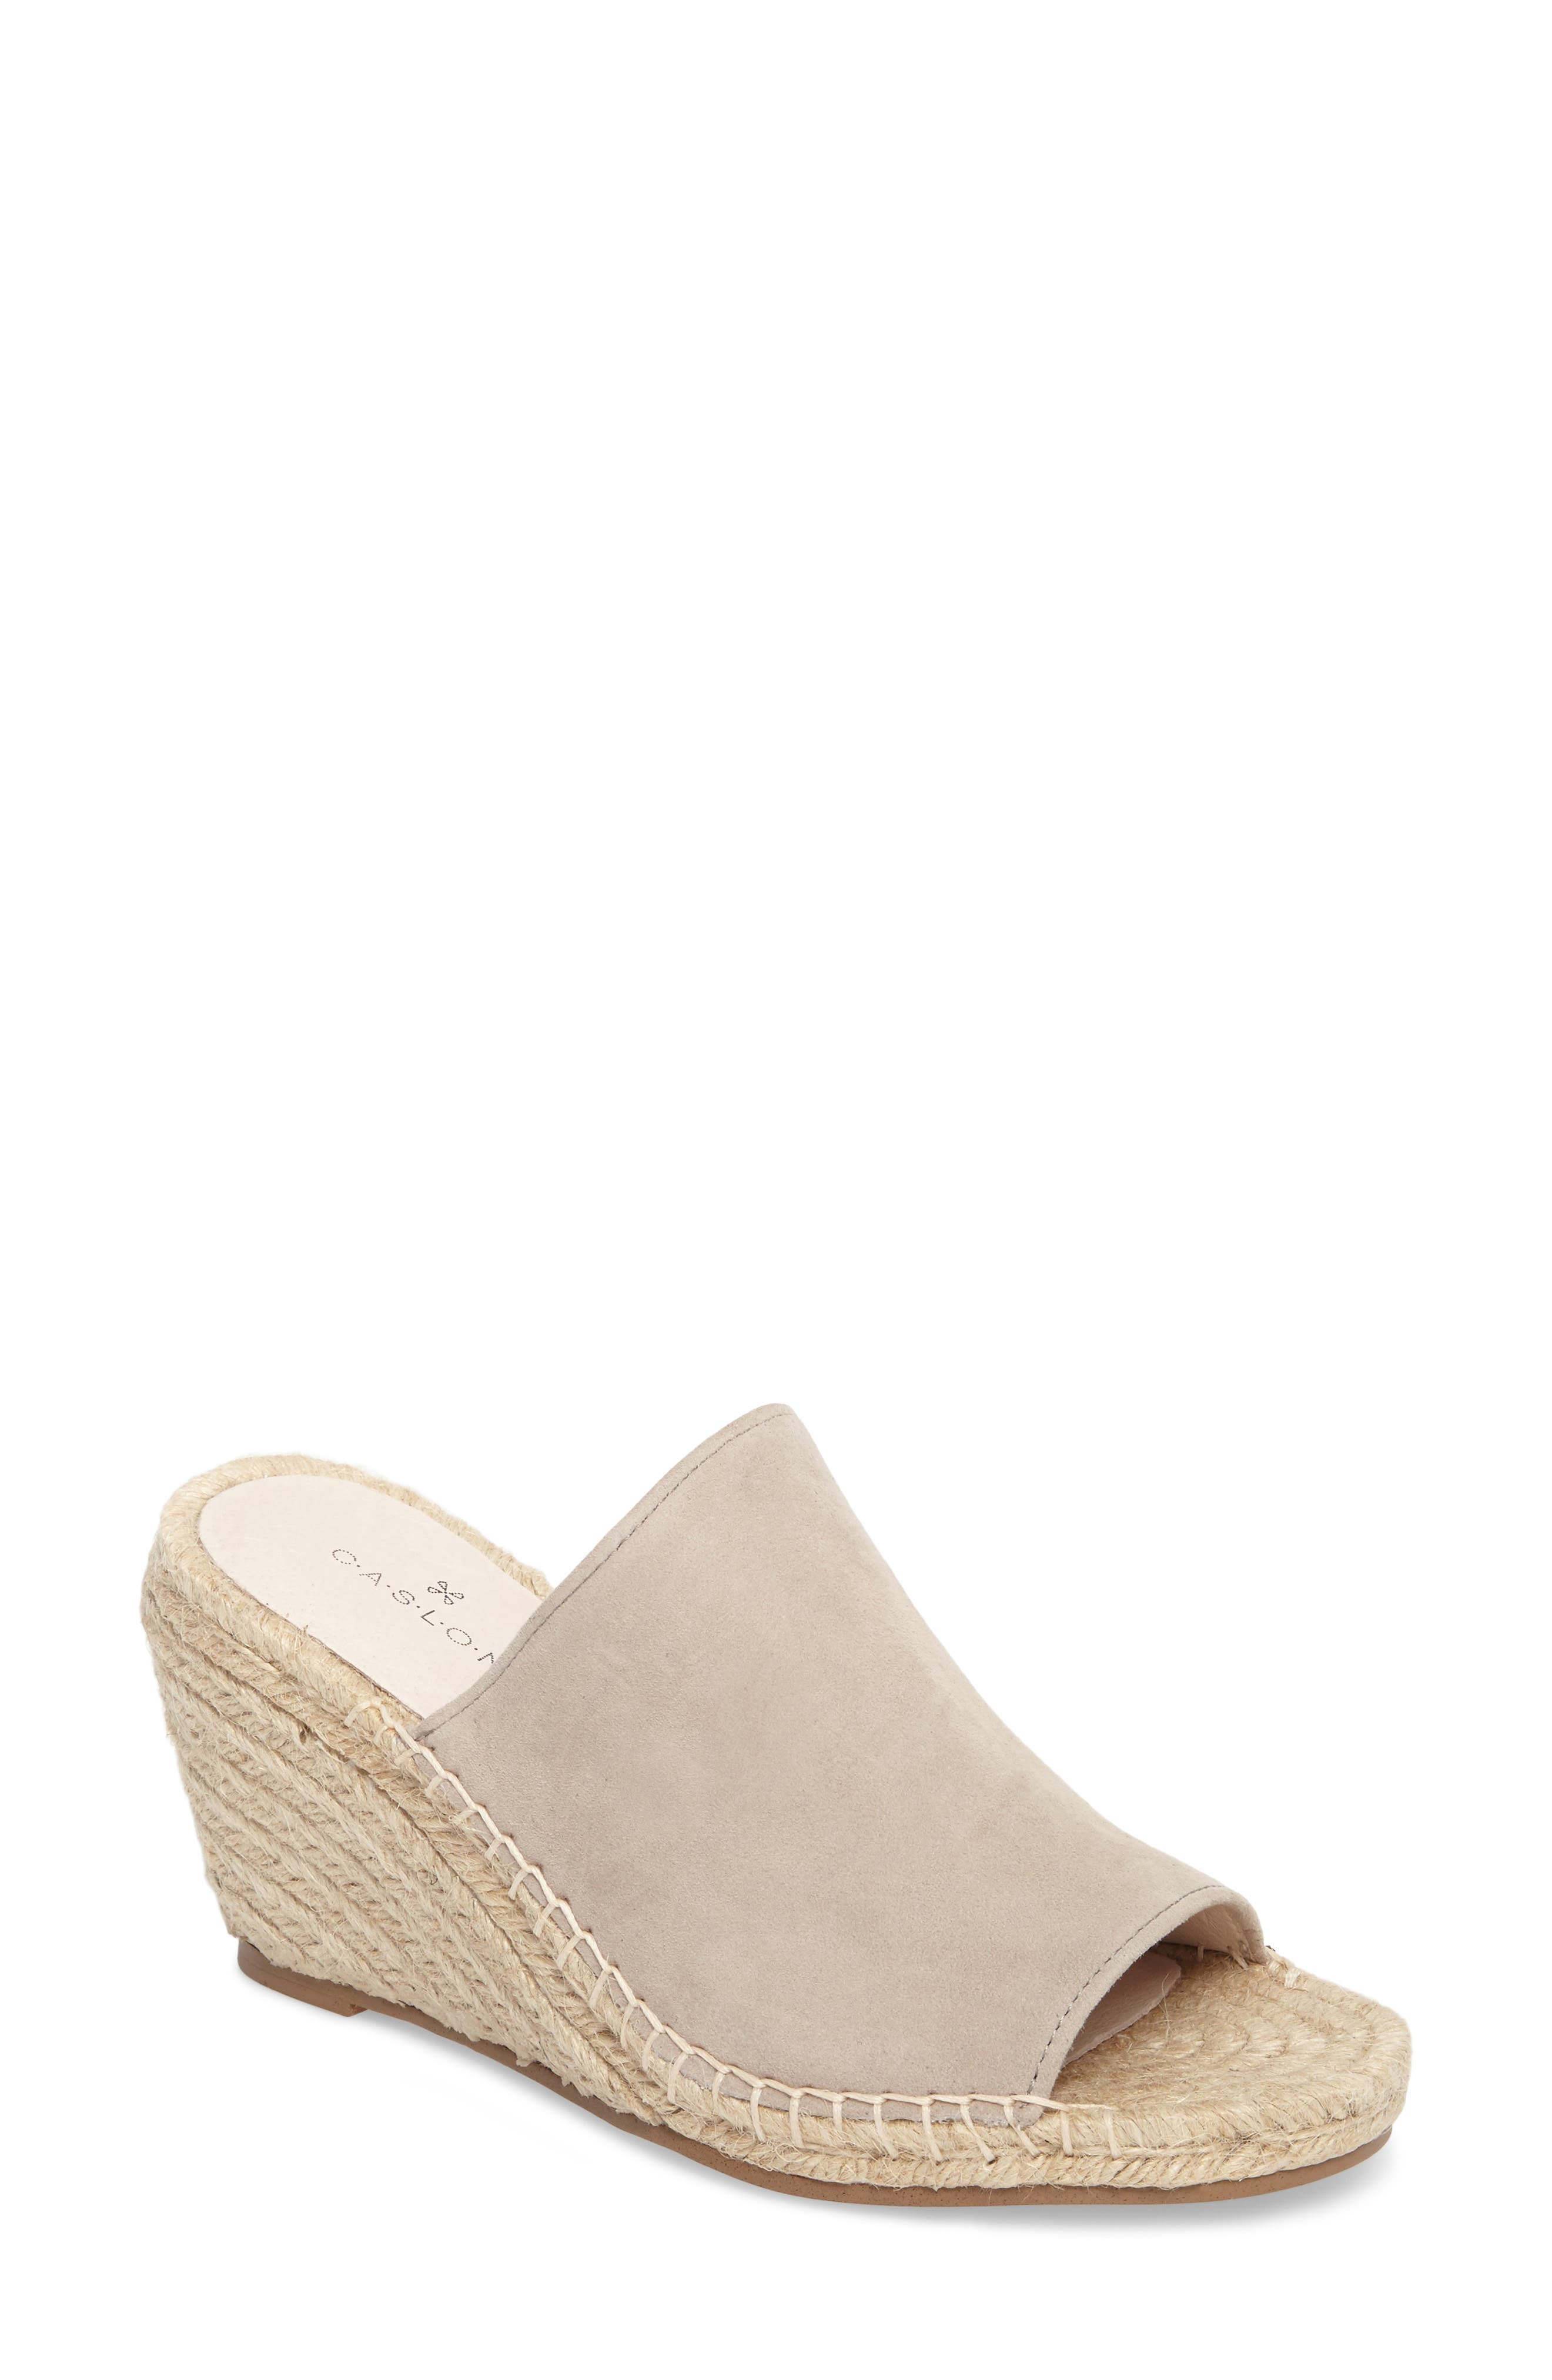 promo code 31a12 ae626 Women s Caslon® Shoes   Nordstrom